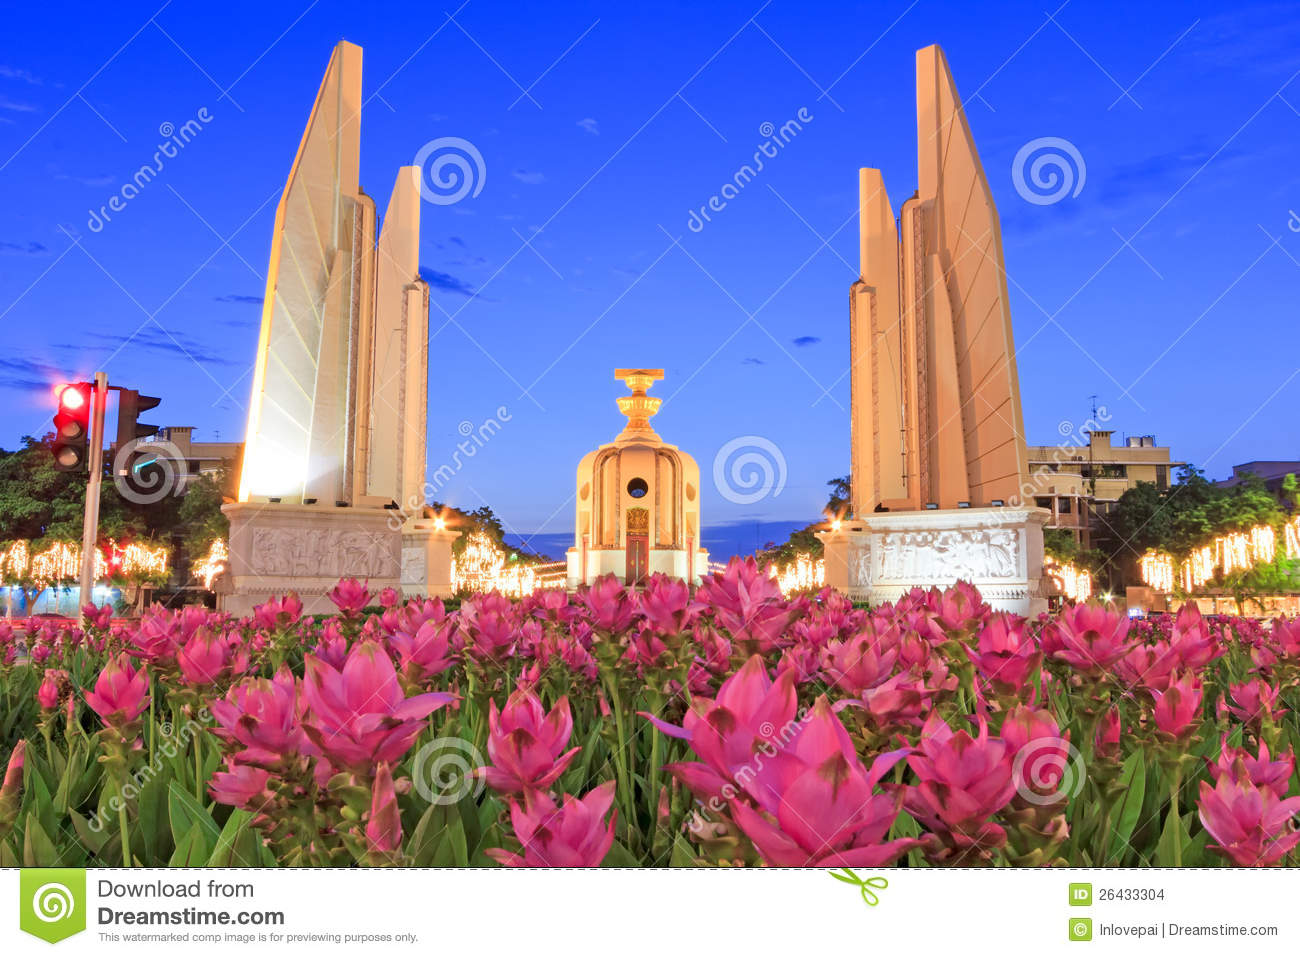 The Democracy Monument at twilight time